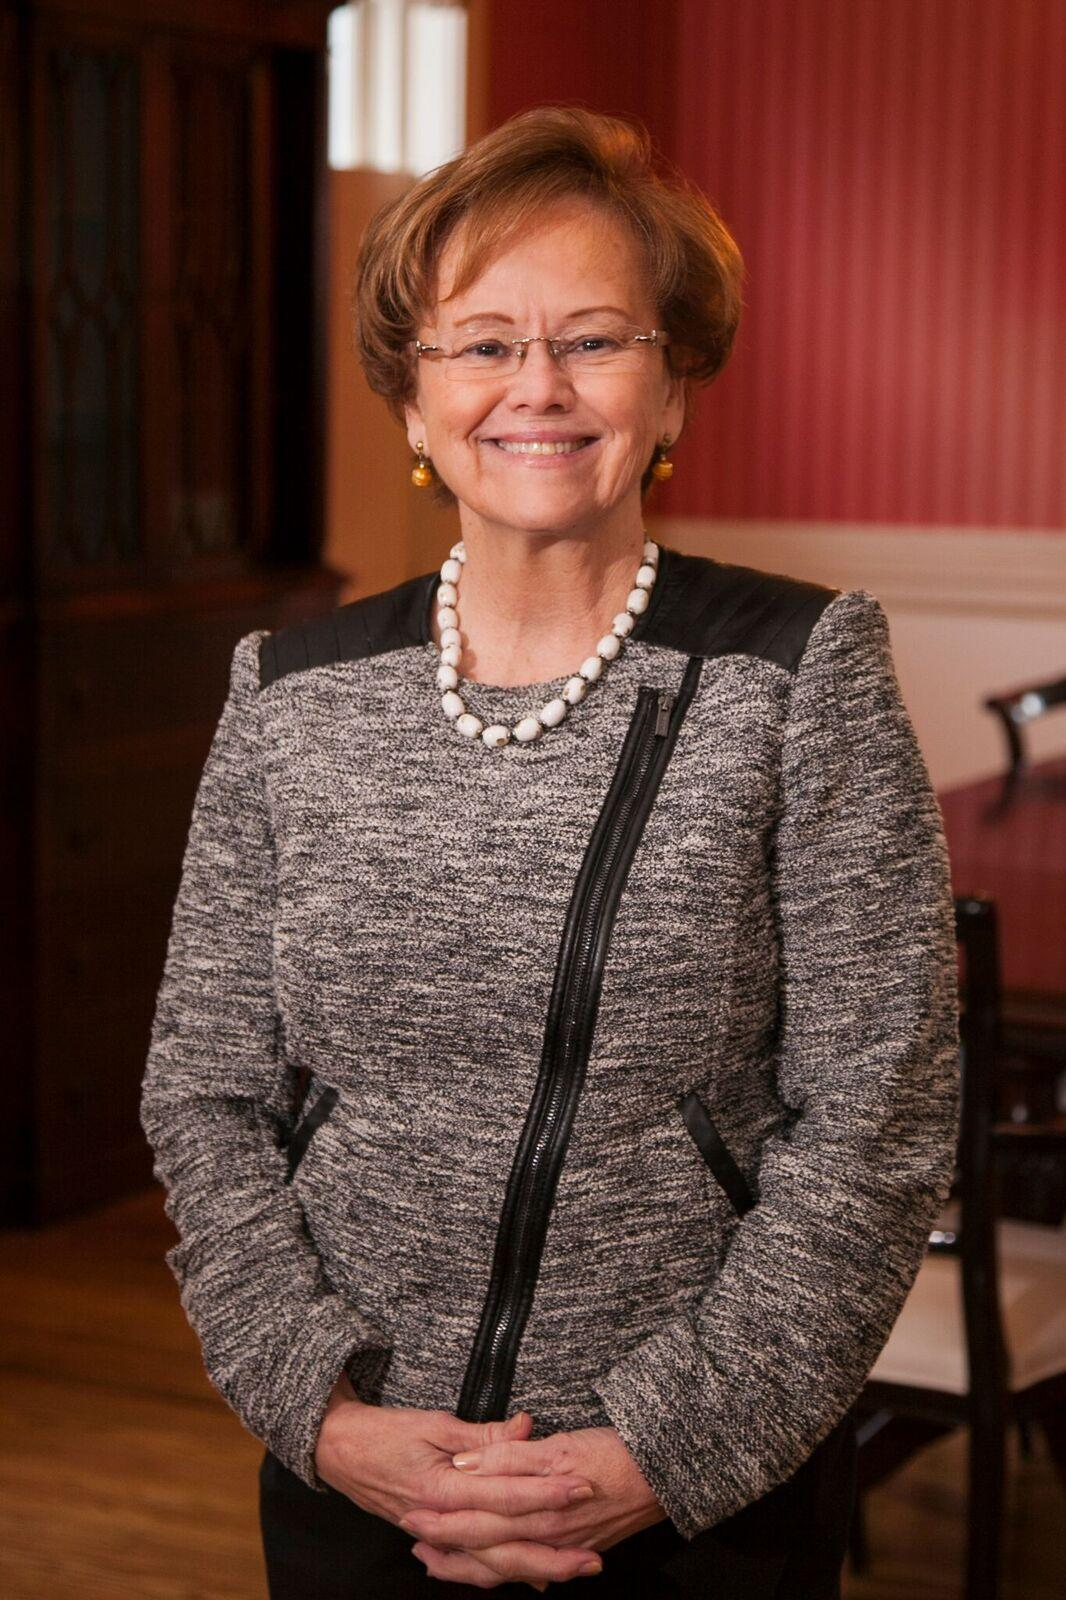 Dr. Margee Ensign, incoming president, visited campus on Tuesday, Feb. 8.